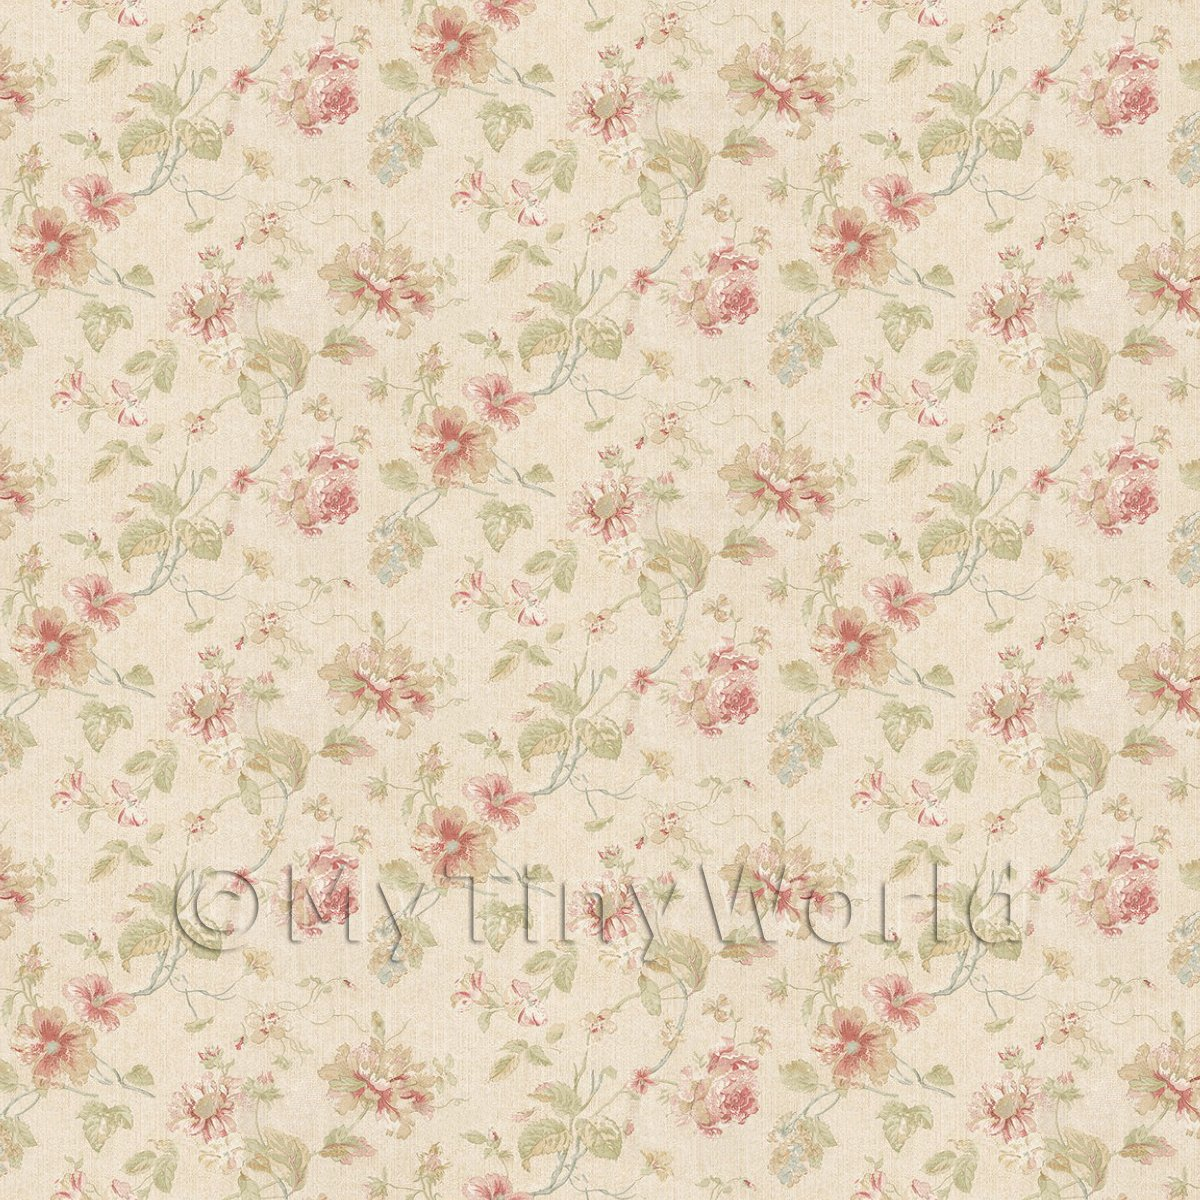 Pack of 5 Dolls House Pale Red Mixed Flower Design Wallpaper Sheets